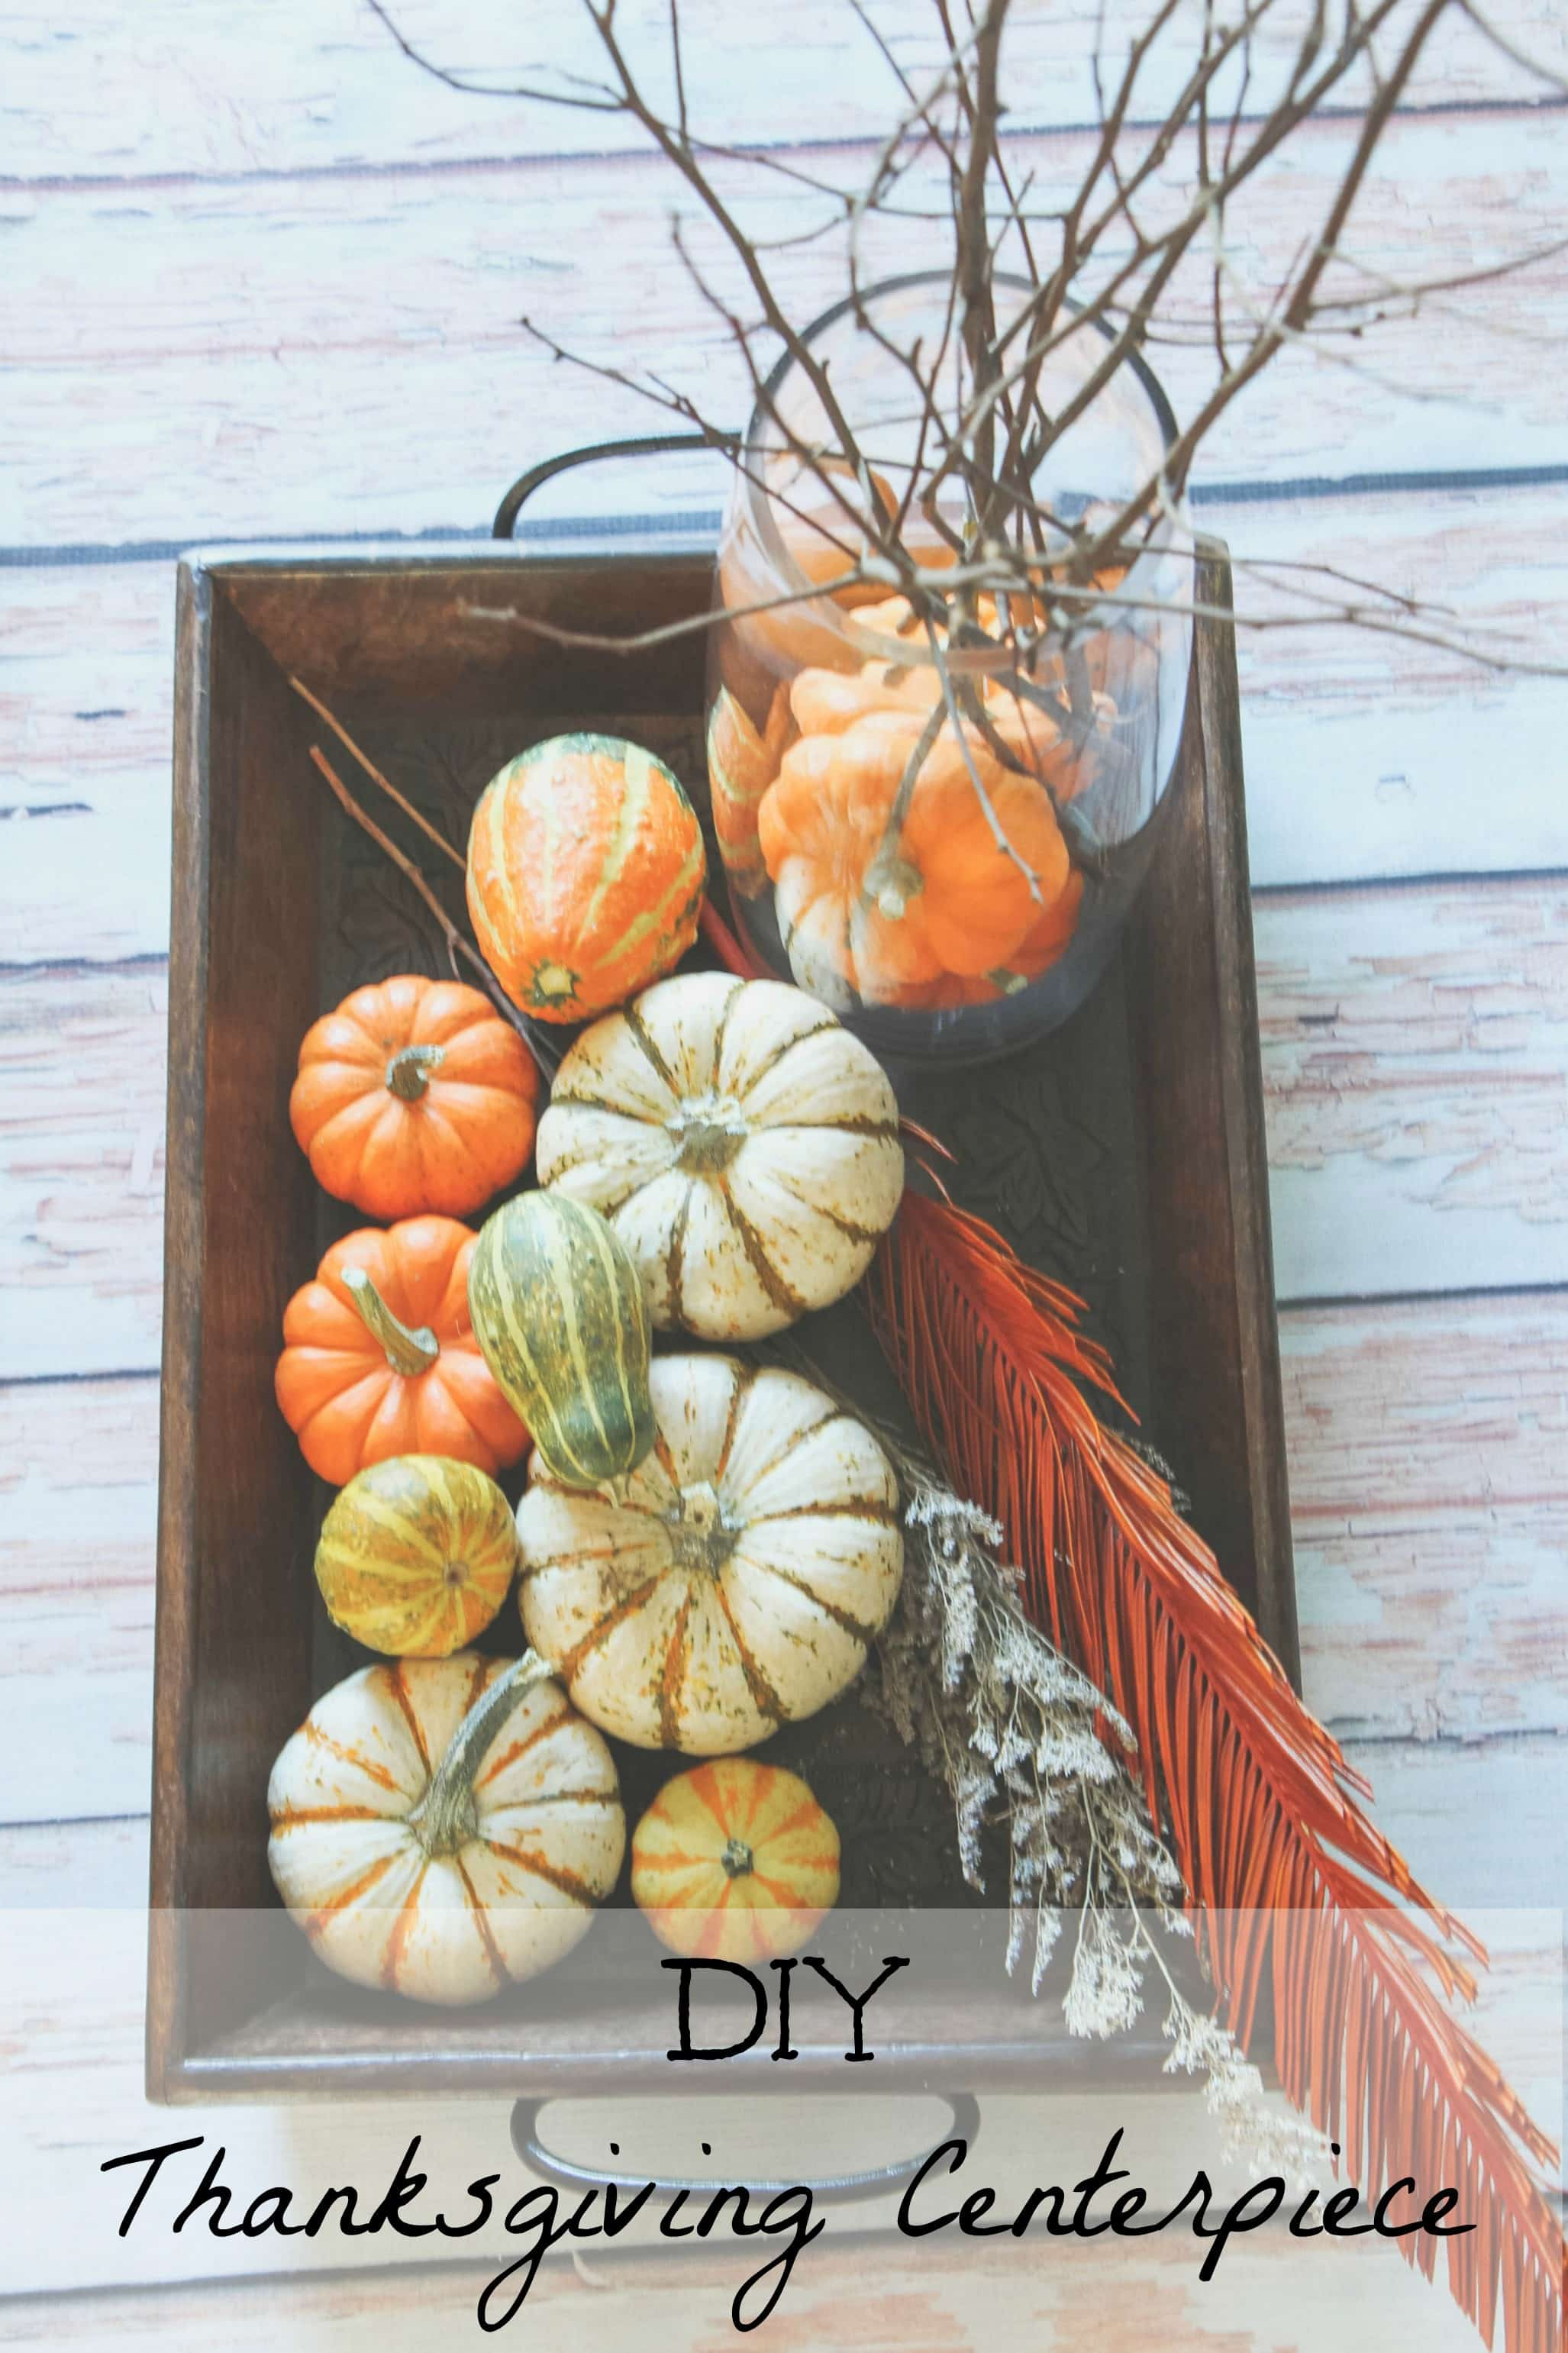 DIY Thanksgiving Centerpiece from MomAdvice.com.